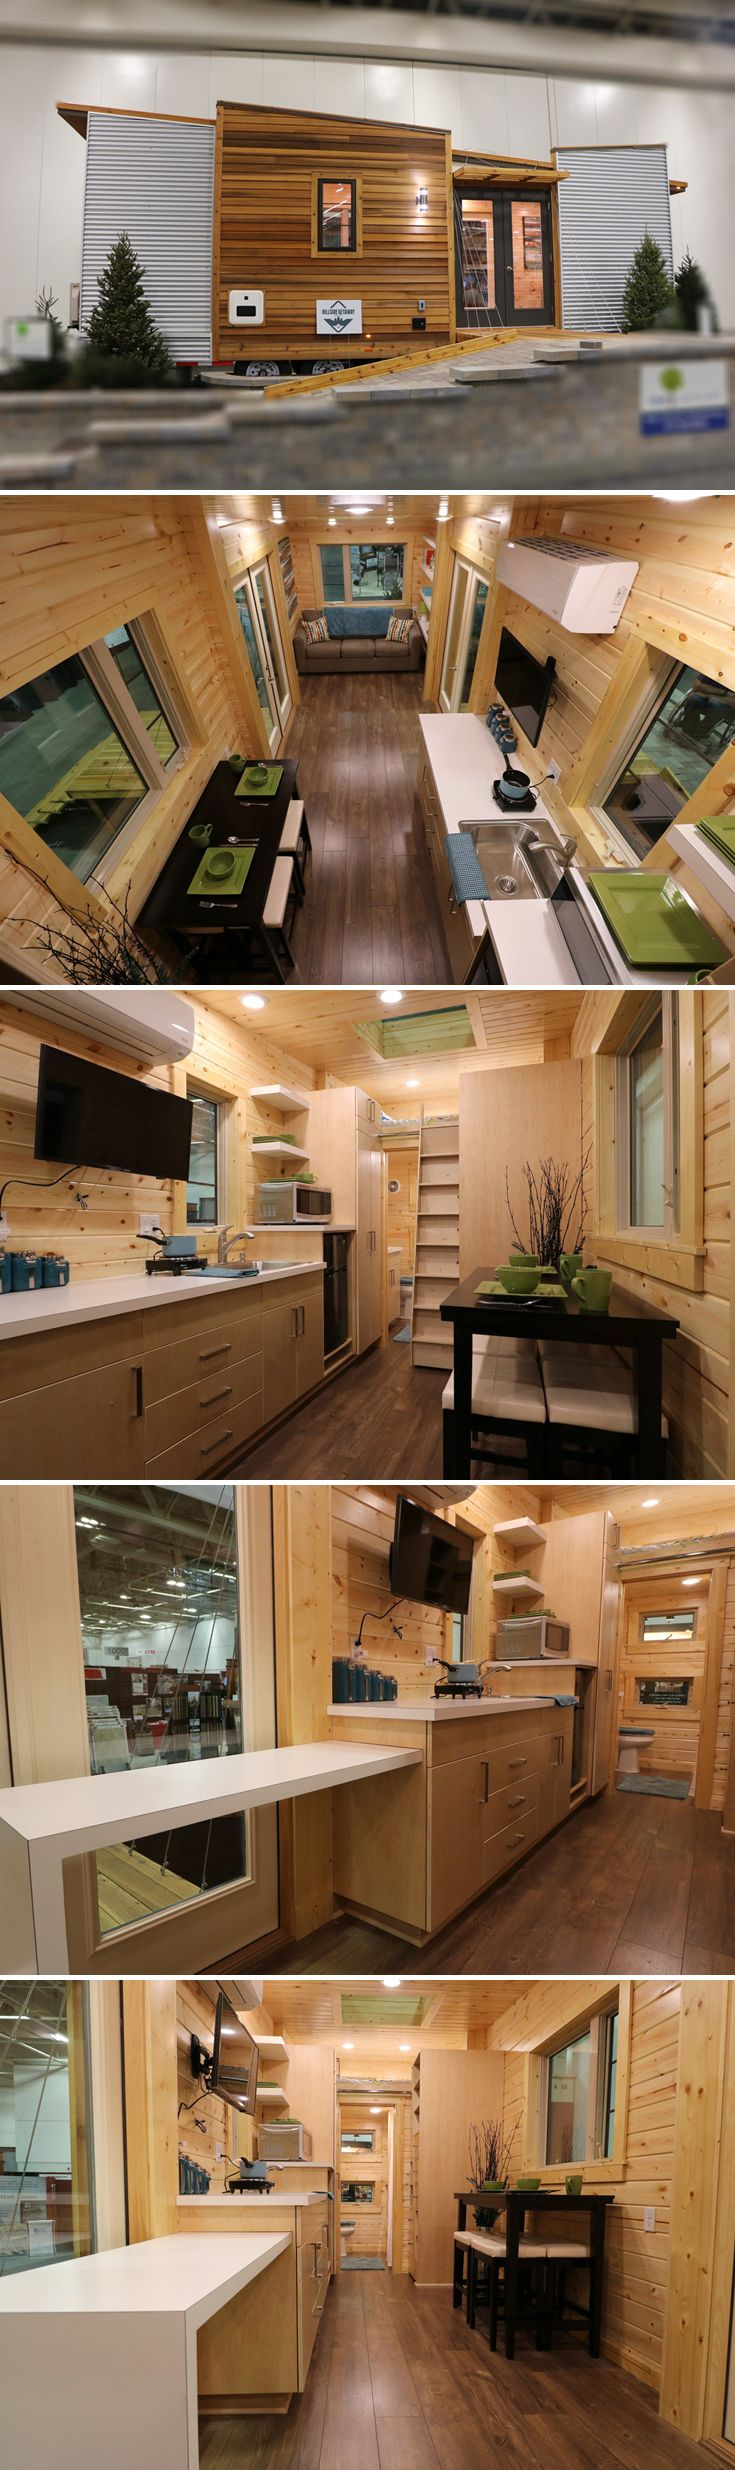 A unique, contemporary tiny house built by Utopian Villas. The 28'x10' house has two fold-down porches and a mix of cedar and corrugated metal siding.